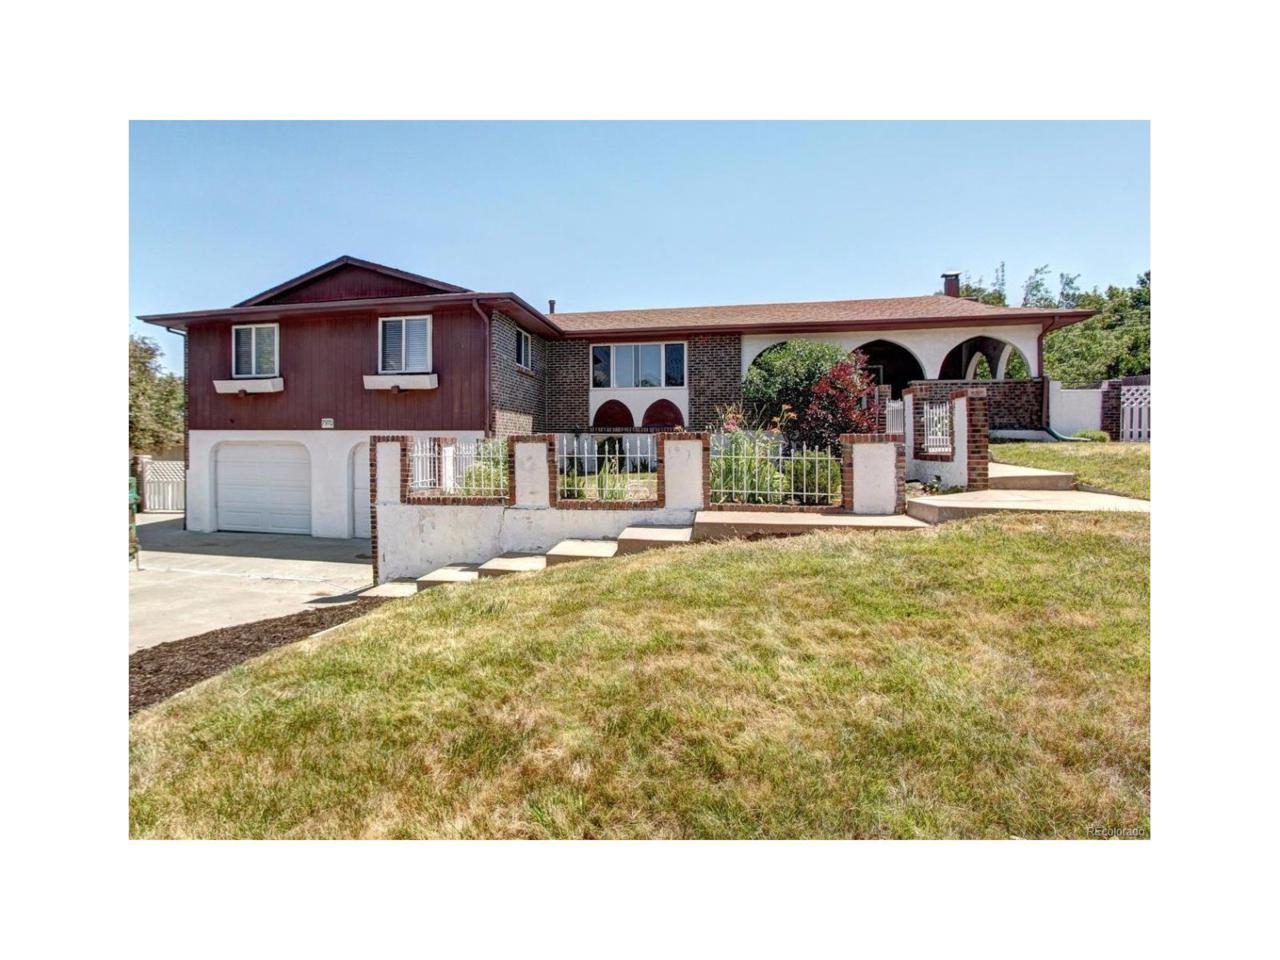 7970 S Lamar Street, Littleton, CO 80128 (MLS #6300004) :: 8z Real Estate